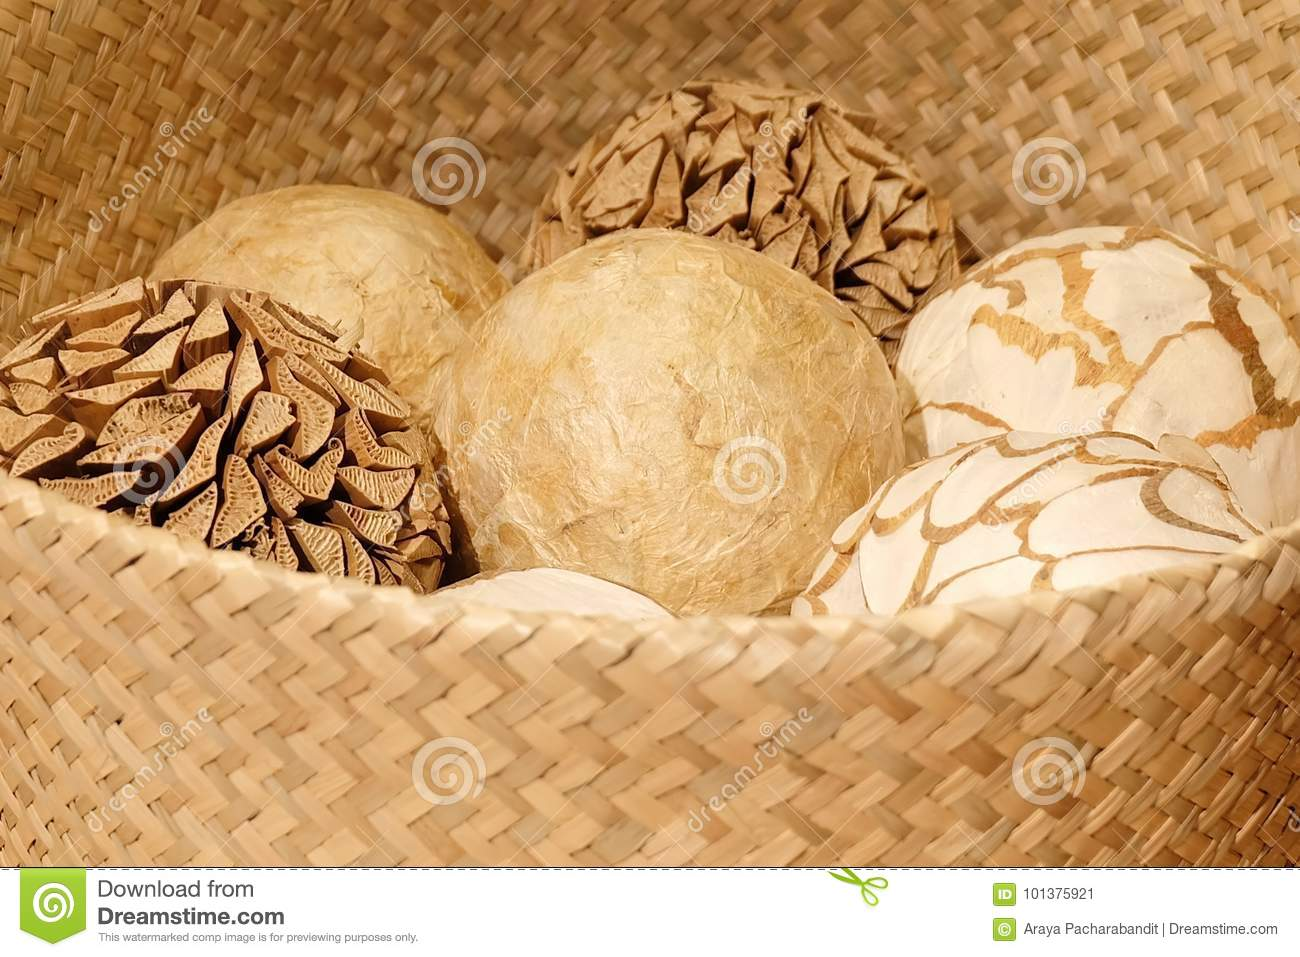 Home Decor Close Up Of Ornamental Decorative Balls In A Woven Wickers Basket Used For Decorating